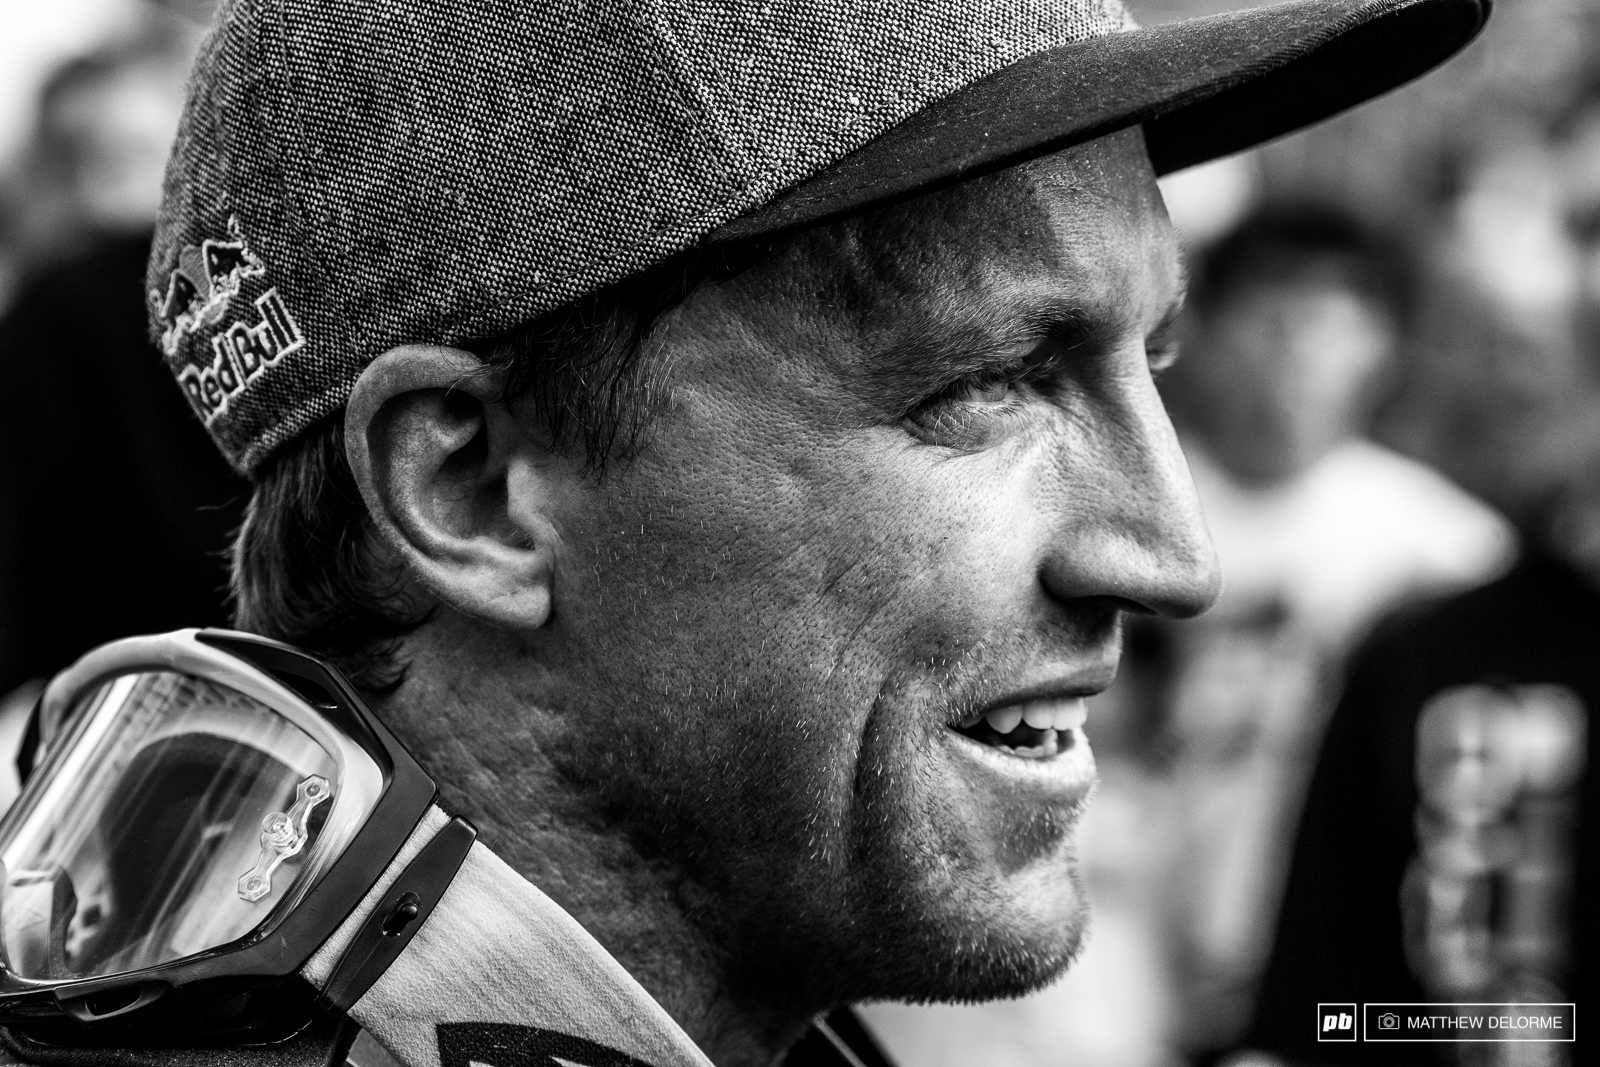 Aaron Gwin wrapped it all up in a tidy package here at Val di Sole. Now he looks toward the next item to check off his list World Champs.